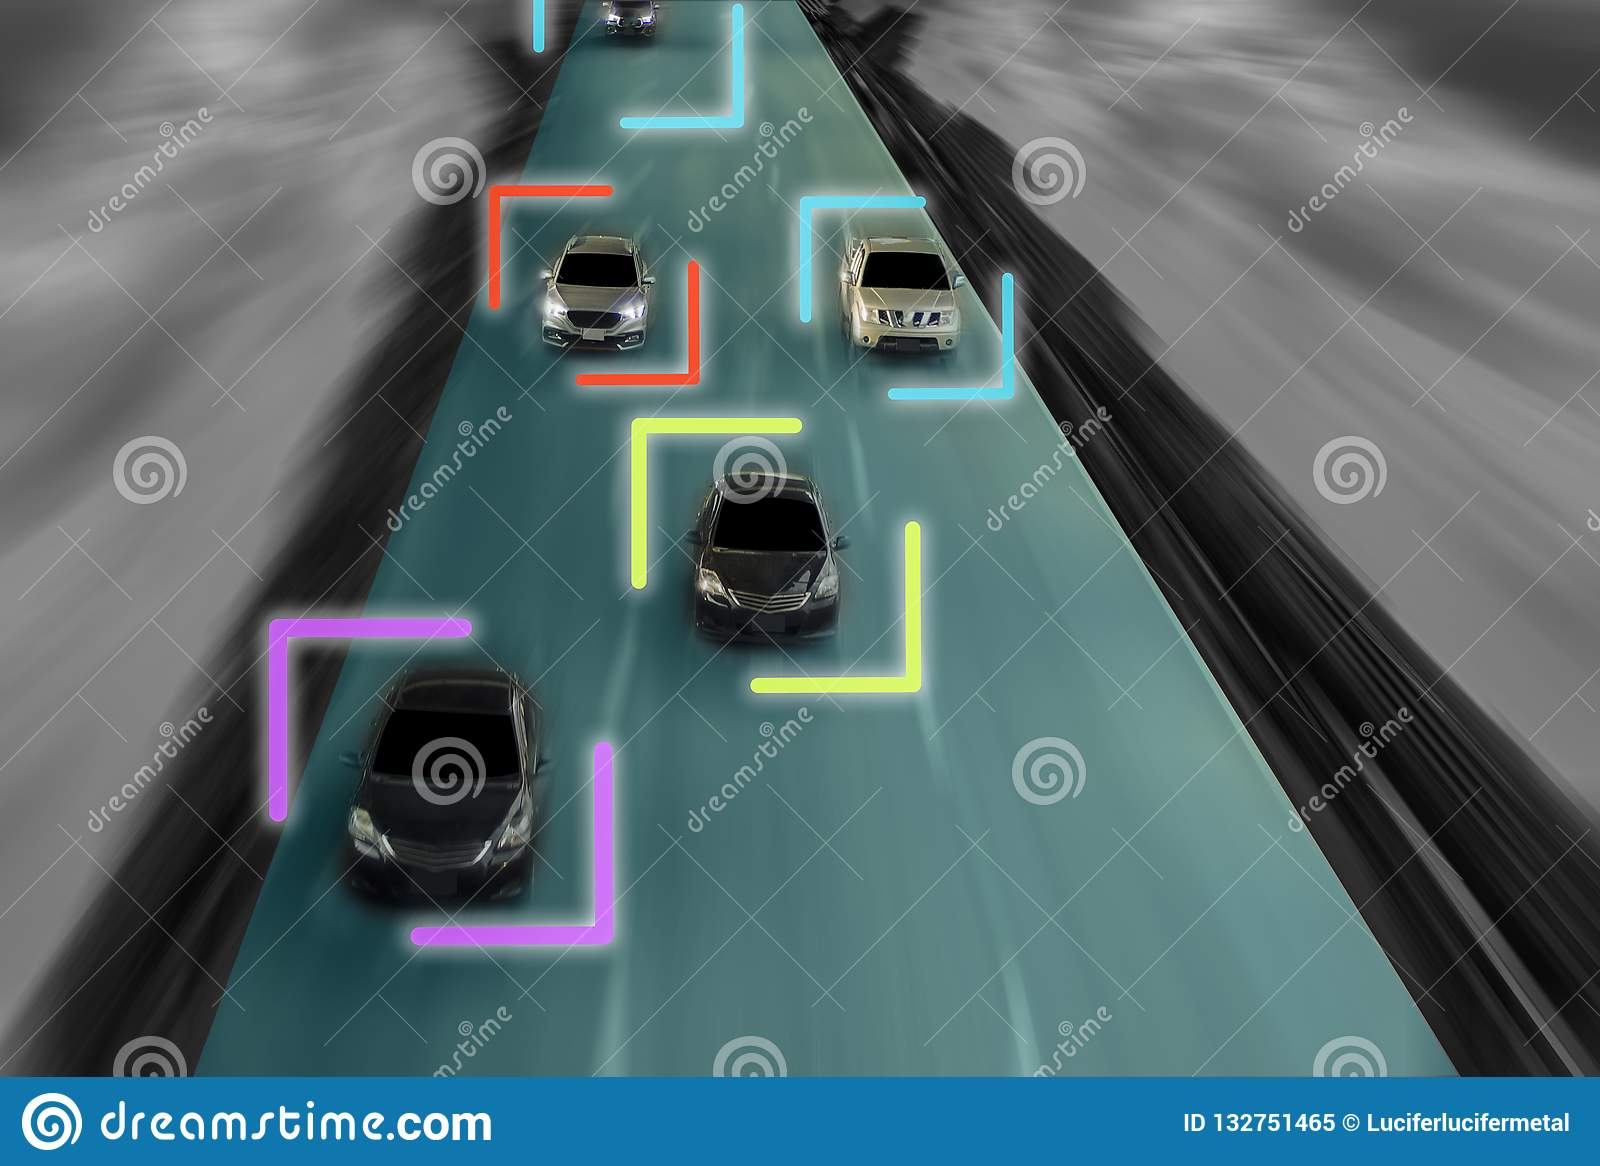 uturistic road of genius for intelligent self driving cars, Artificial Intelligence system,Detecting speed at city speed,With con